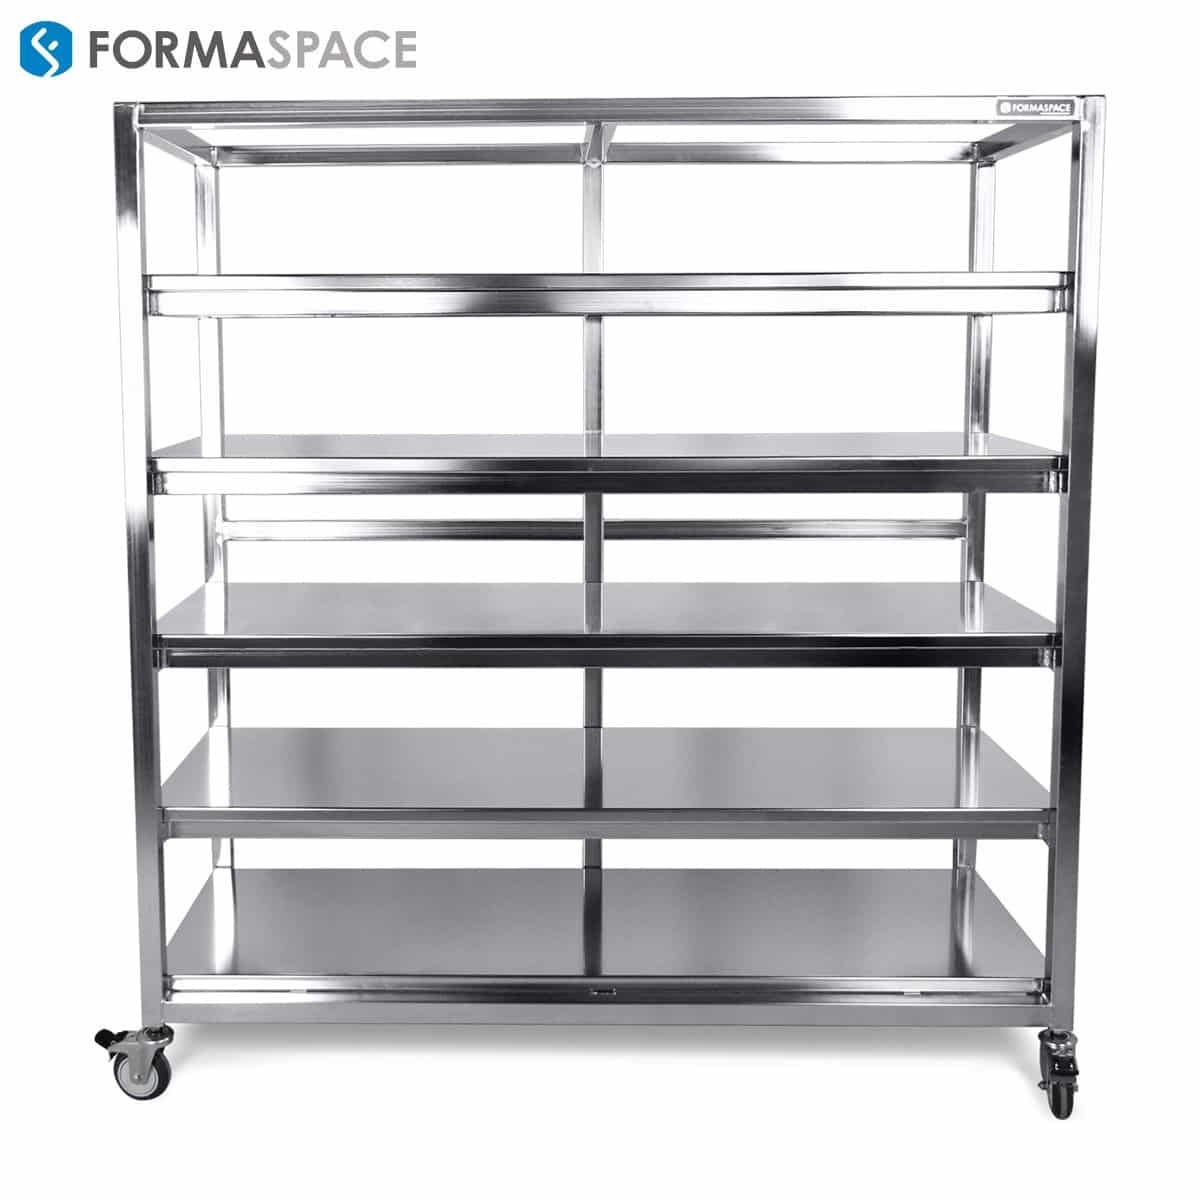 stainless steel fixed shelving system